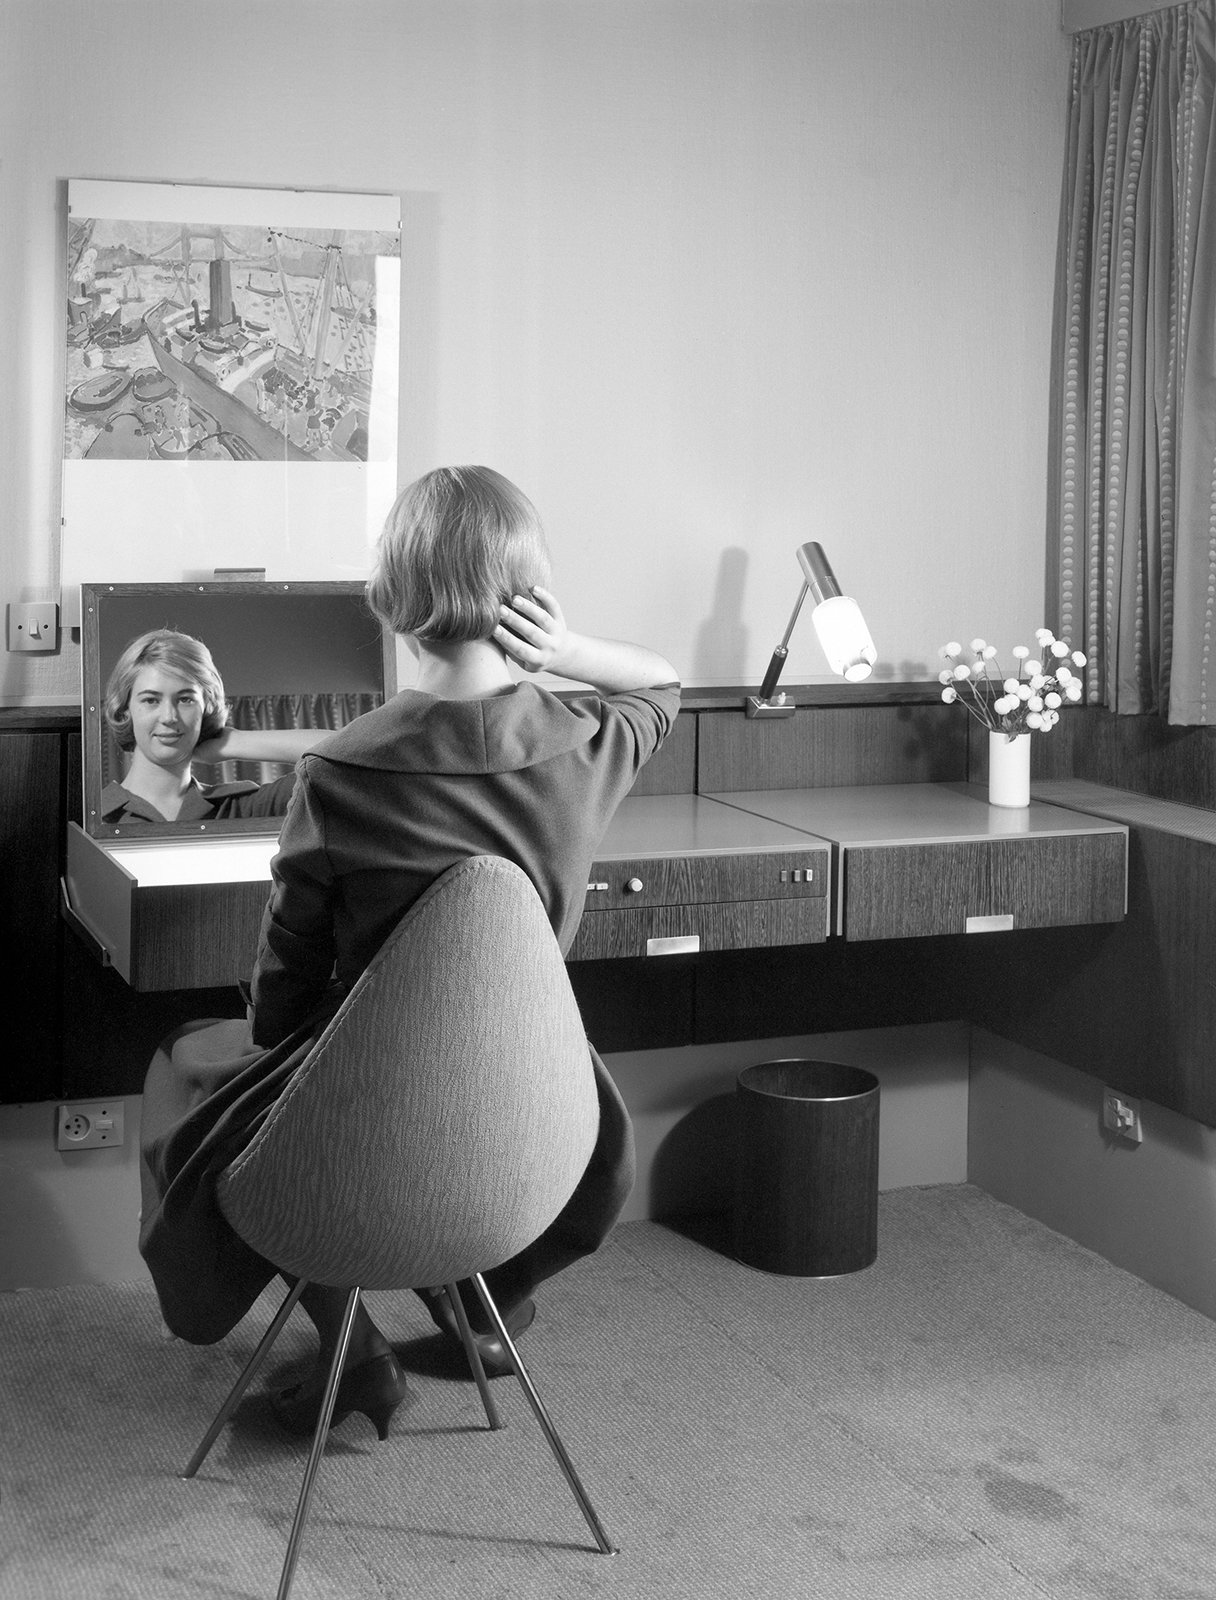 Arne Jacobsen designed nearly every element of the hotel, including the built-ins, textiles, and accessories. In addition to furnishing the rooms with existing pieces from his portfolio, Jacobsen created new pieces for the hotel, like the Drop chair shown in this archival photo.